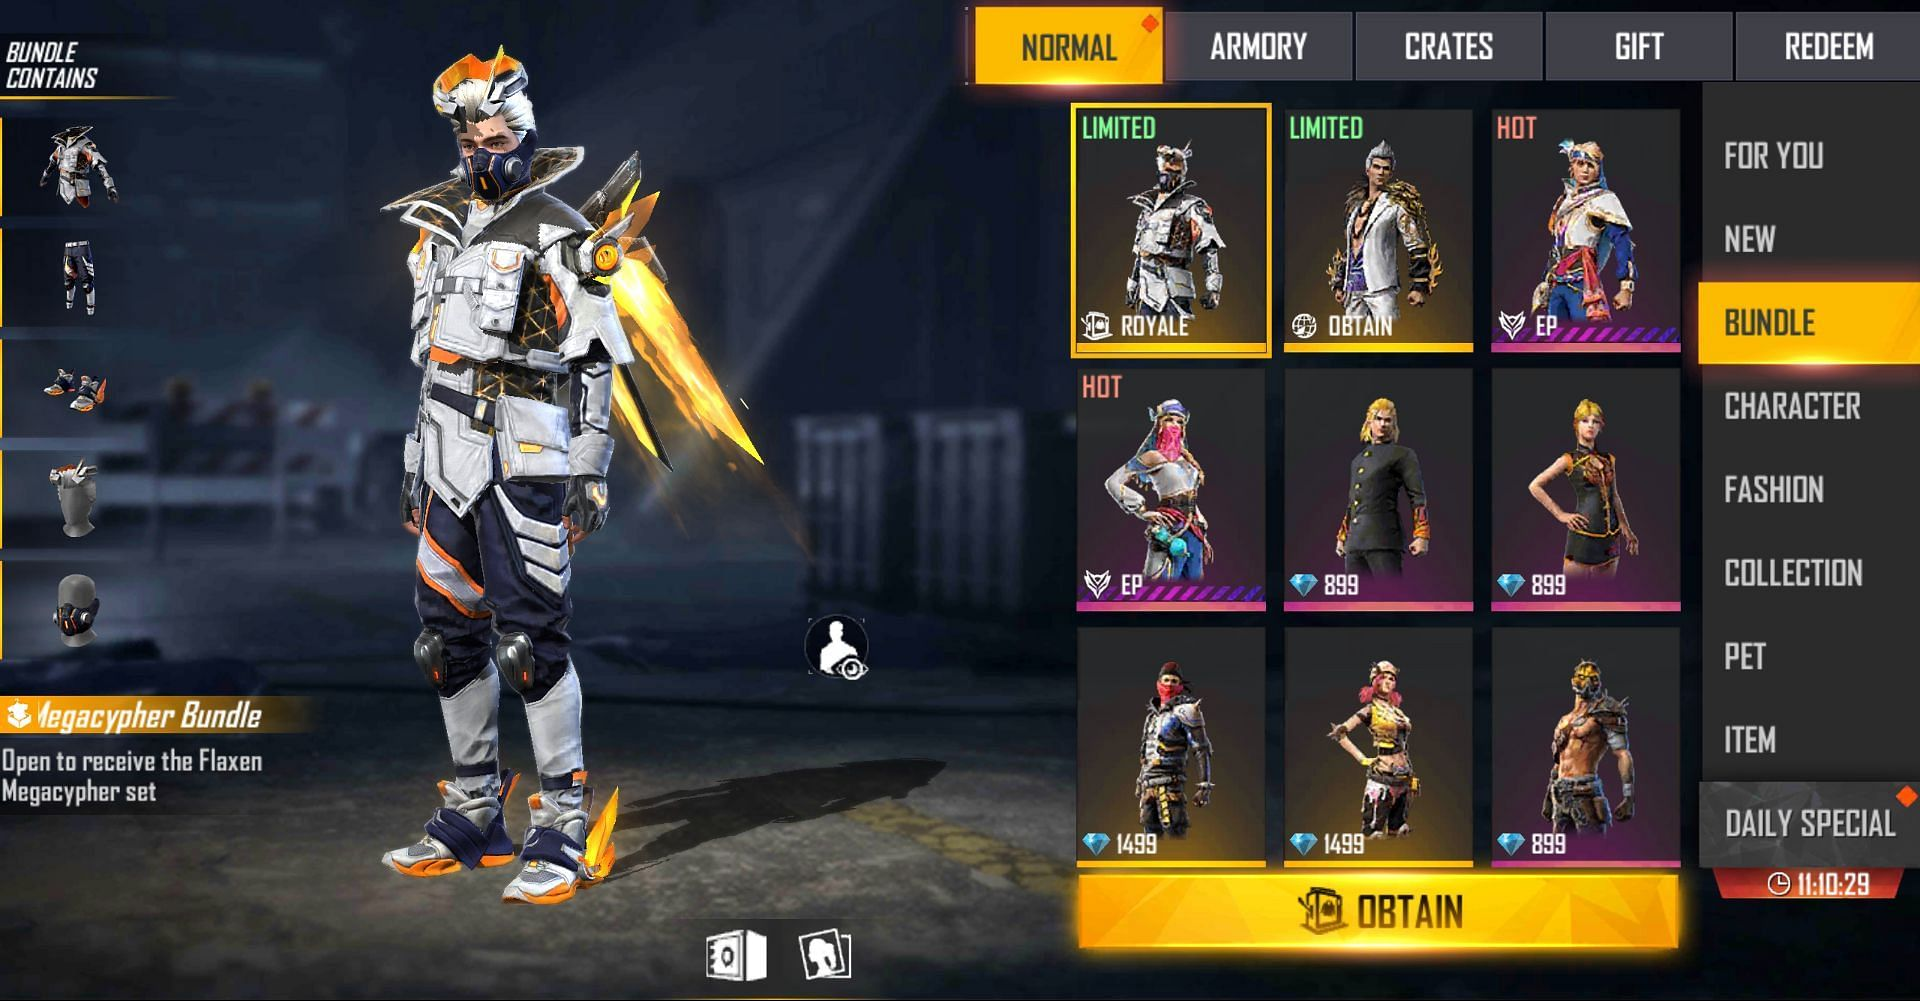 Users can get it from Golden Ascension (Image via Free Fire)